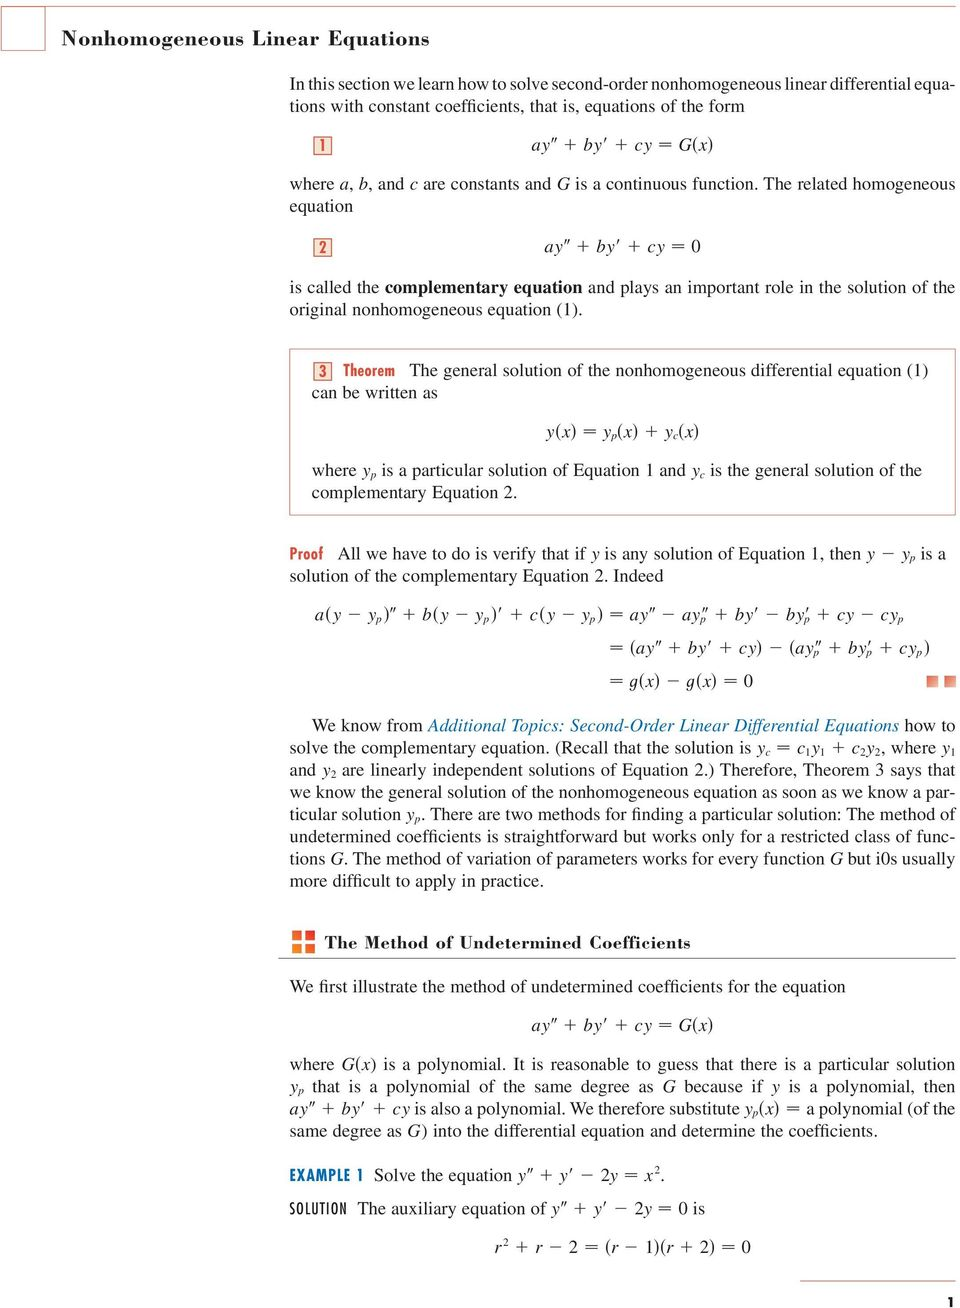 The related homogeneous equation ay by cy 0 is called the complementary equation and plays an important role in the solution of the original nonhomogeneous equation ().